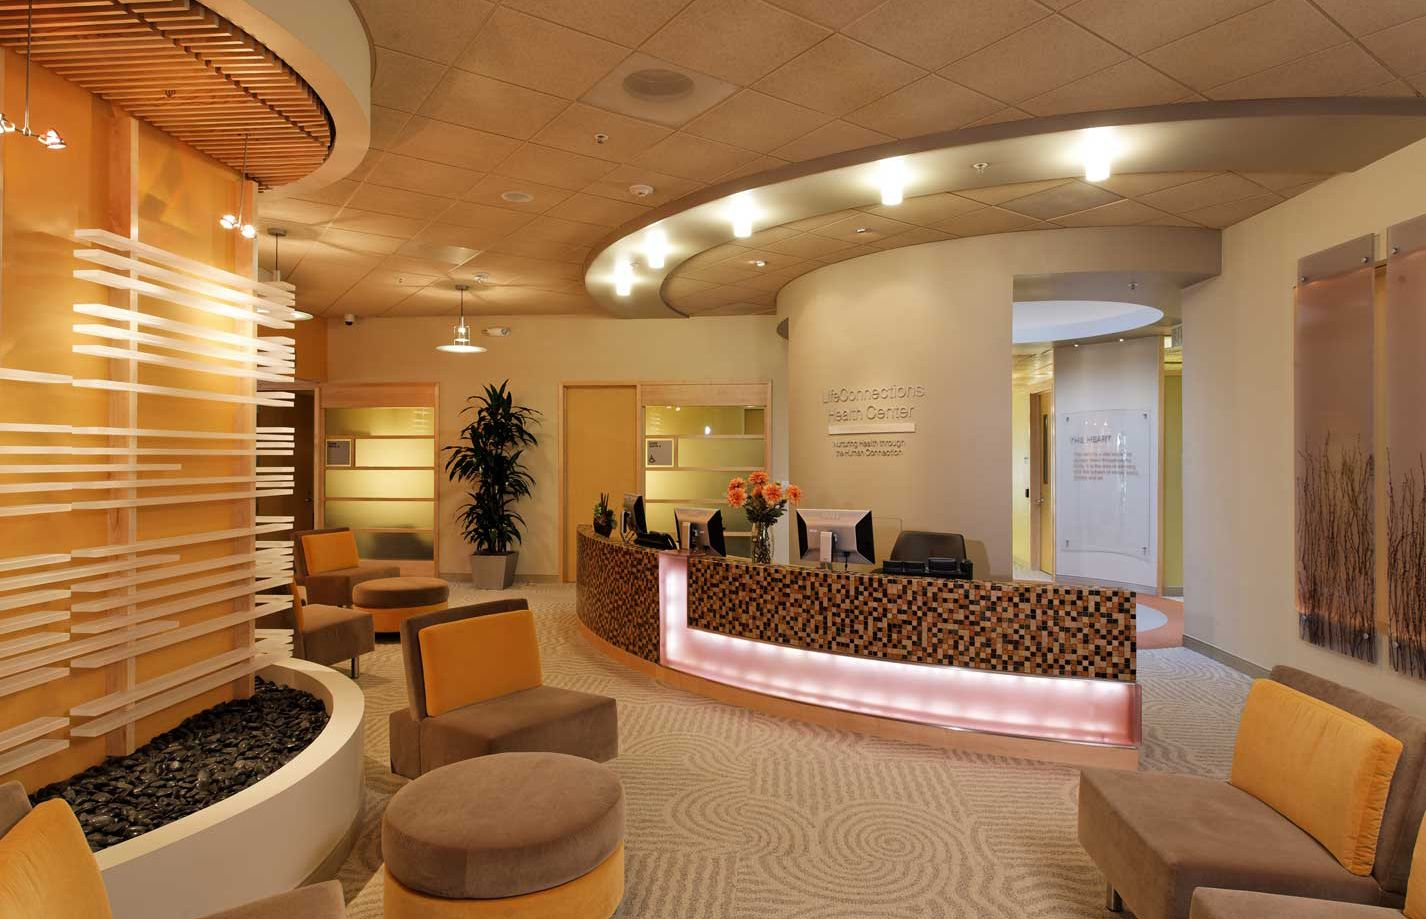 Reception And Lobby Waiting At The Cisco Systems Employee